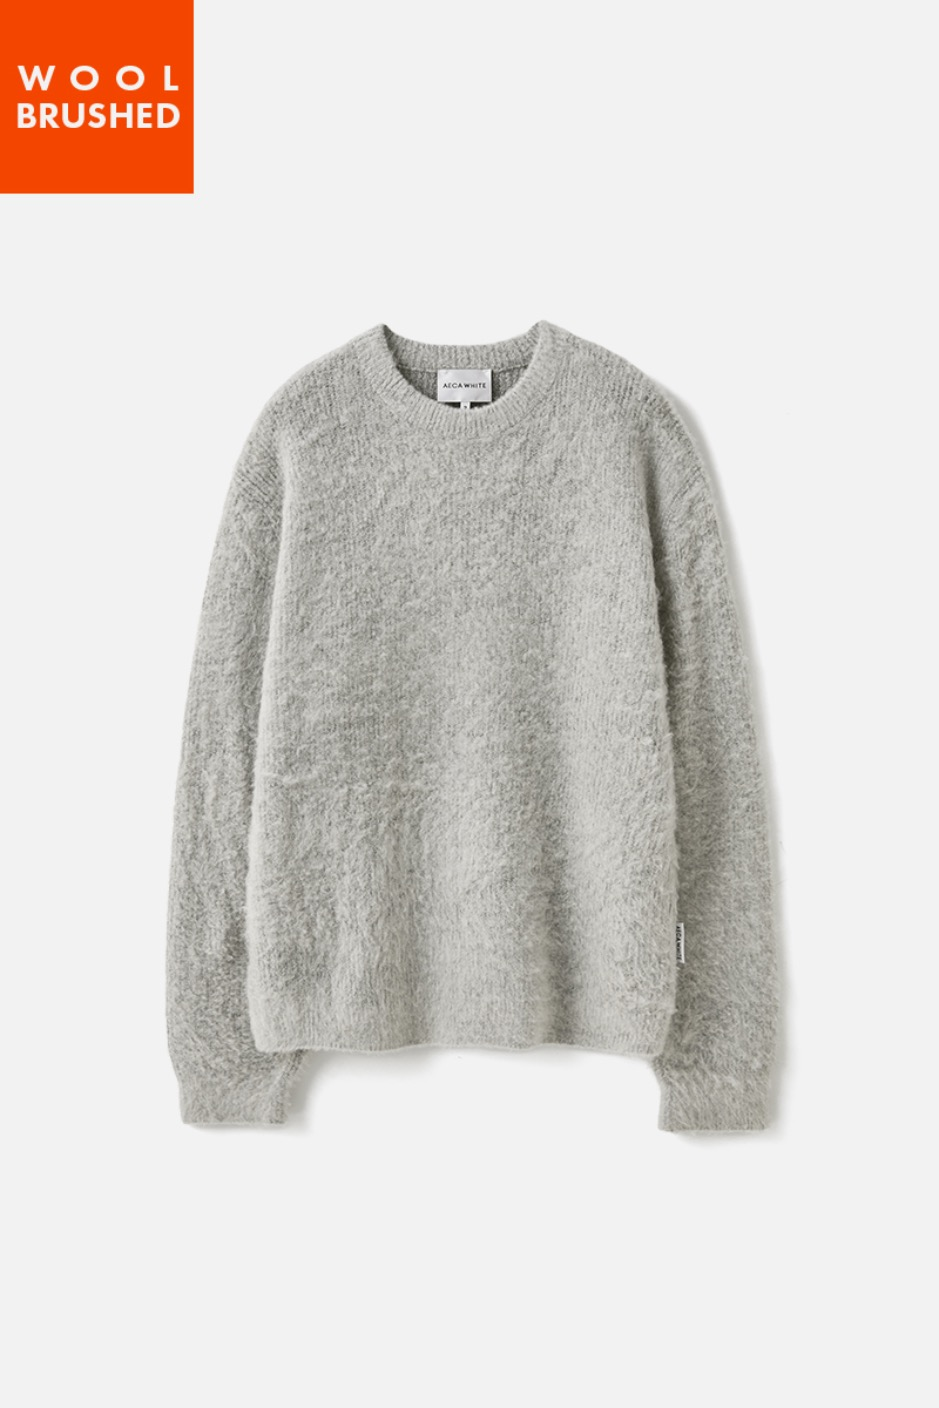 OVERSIZE WOOL BRUSHED KNIT-GREY